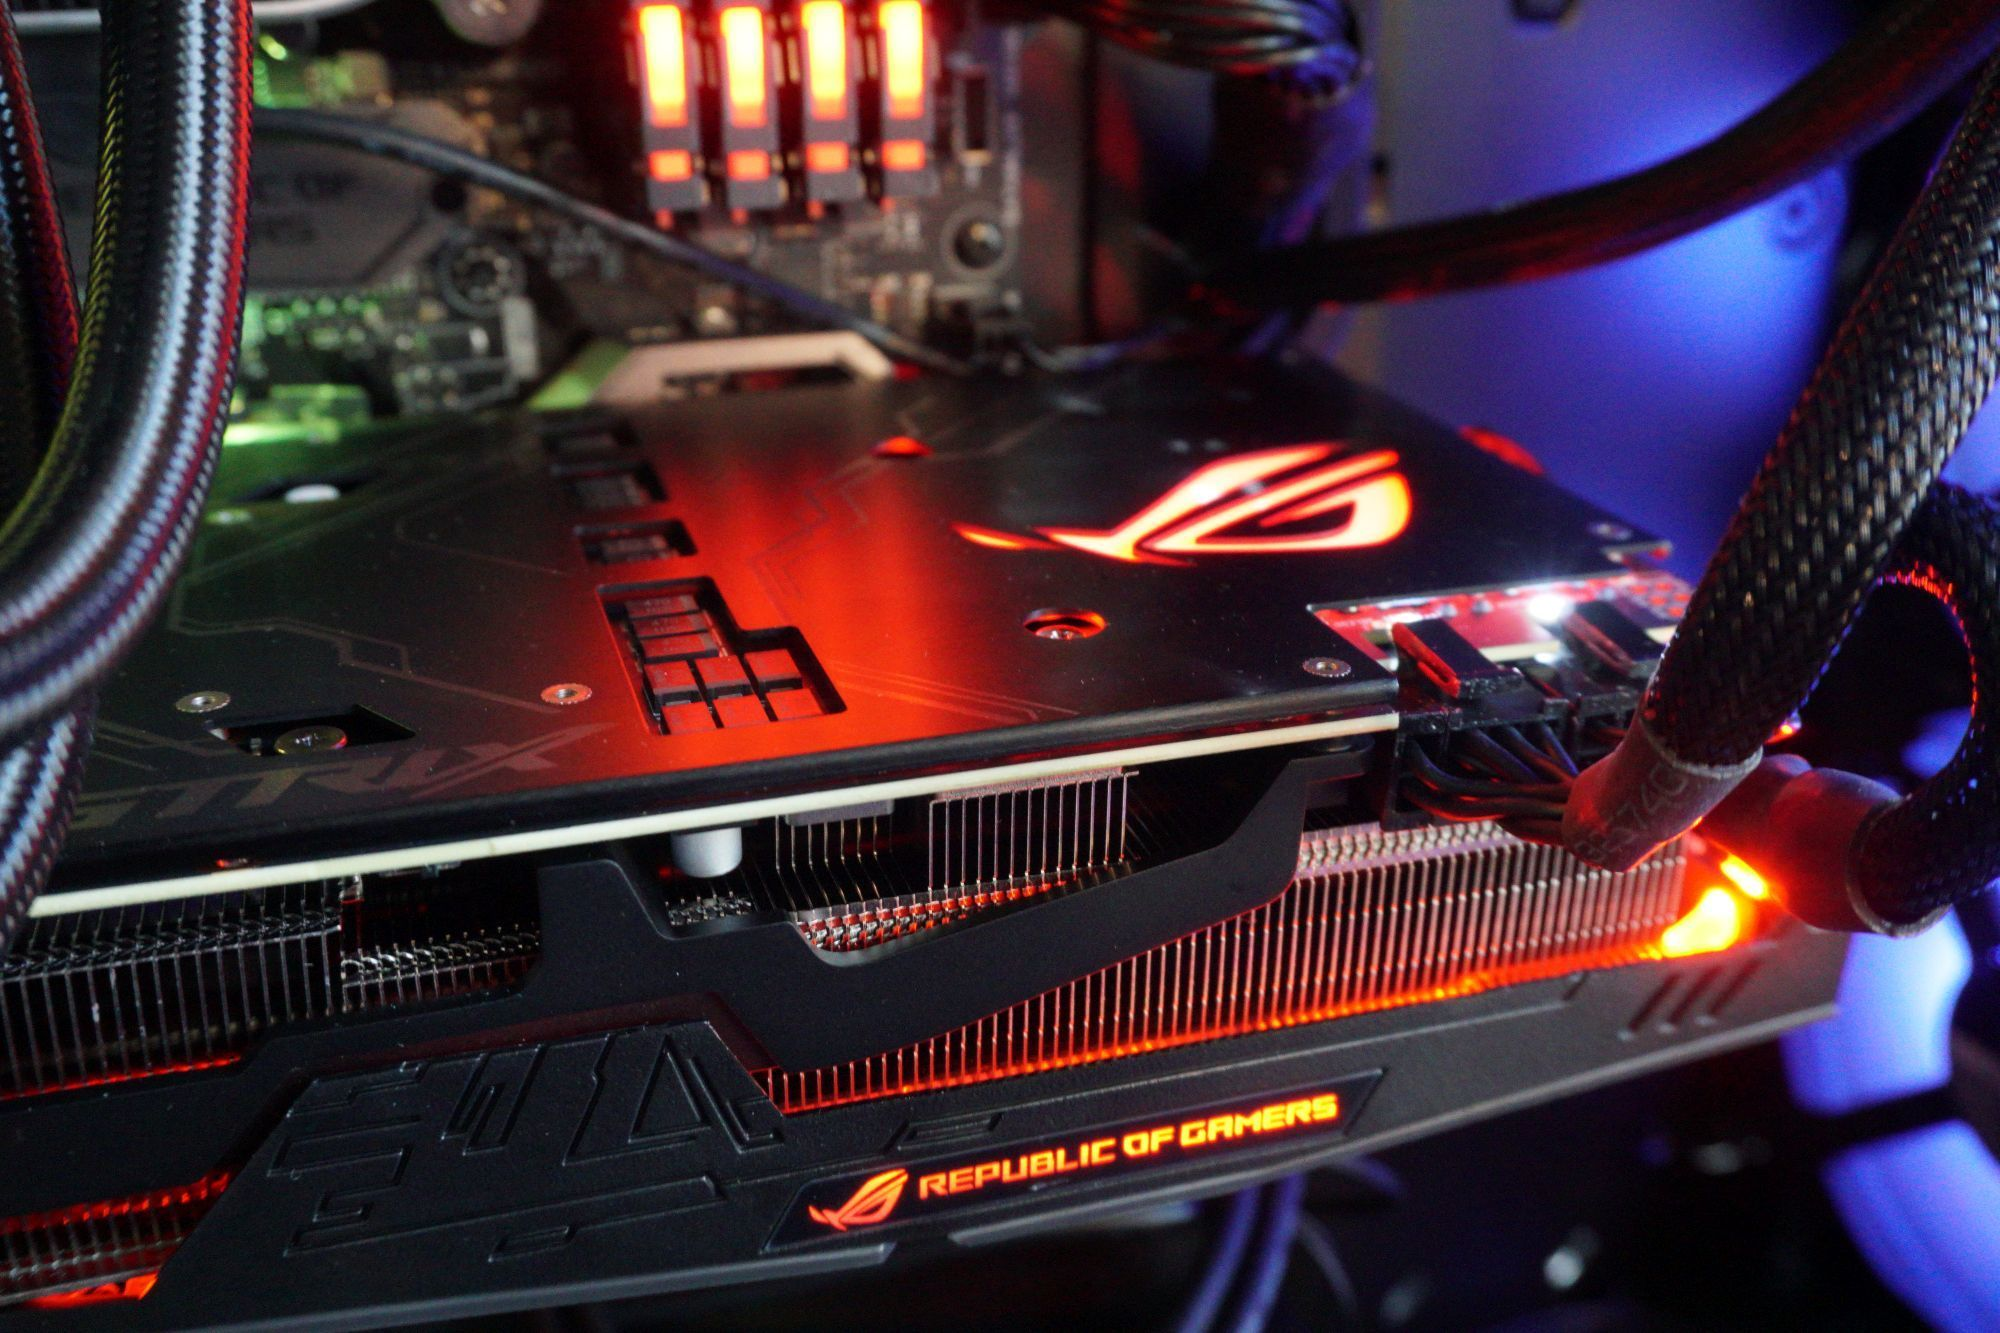 Asus Rog Strix Rtx 2080 Review An Ice Cold Whisper